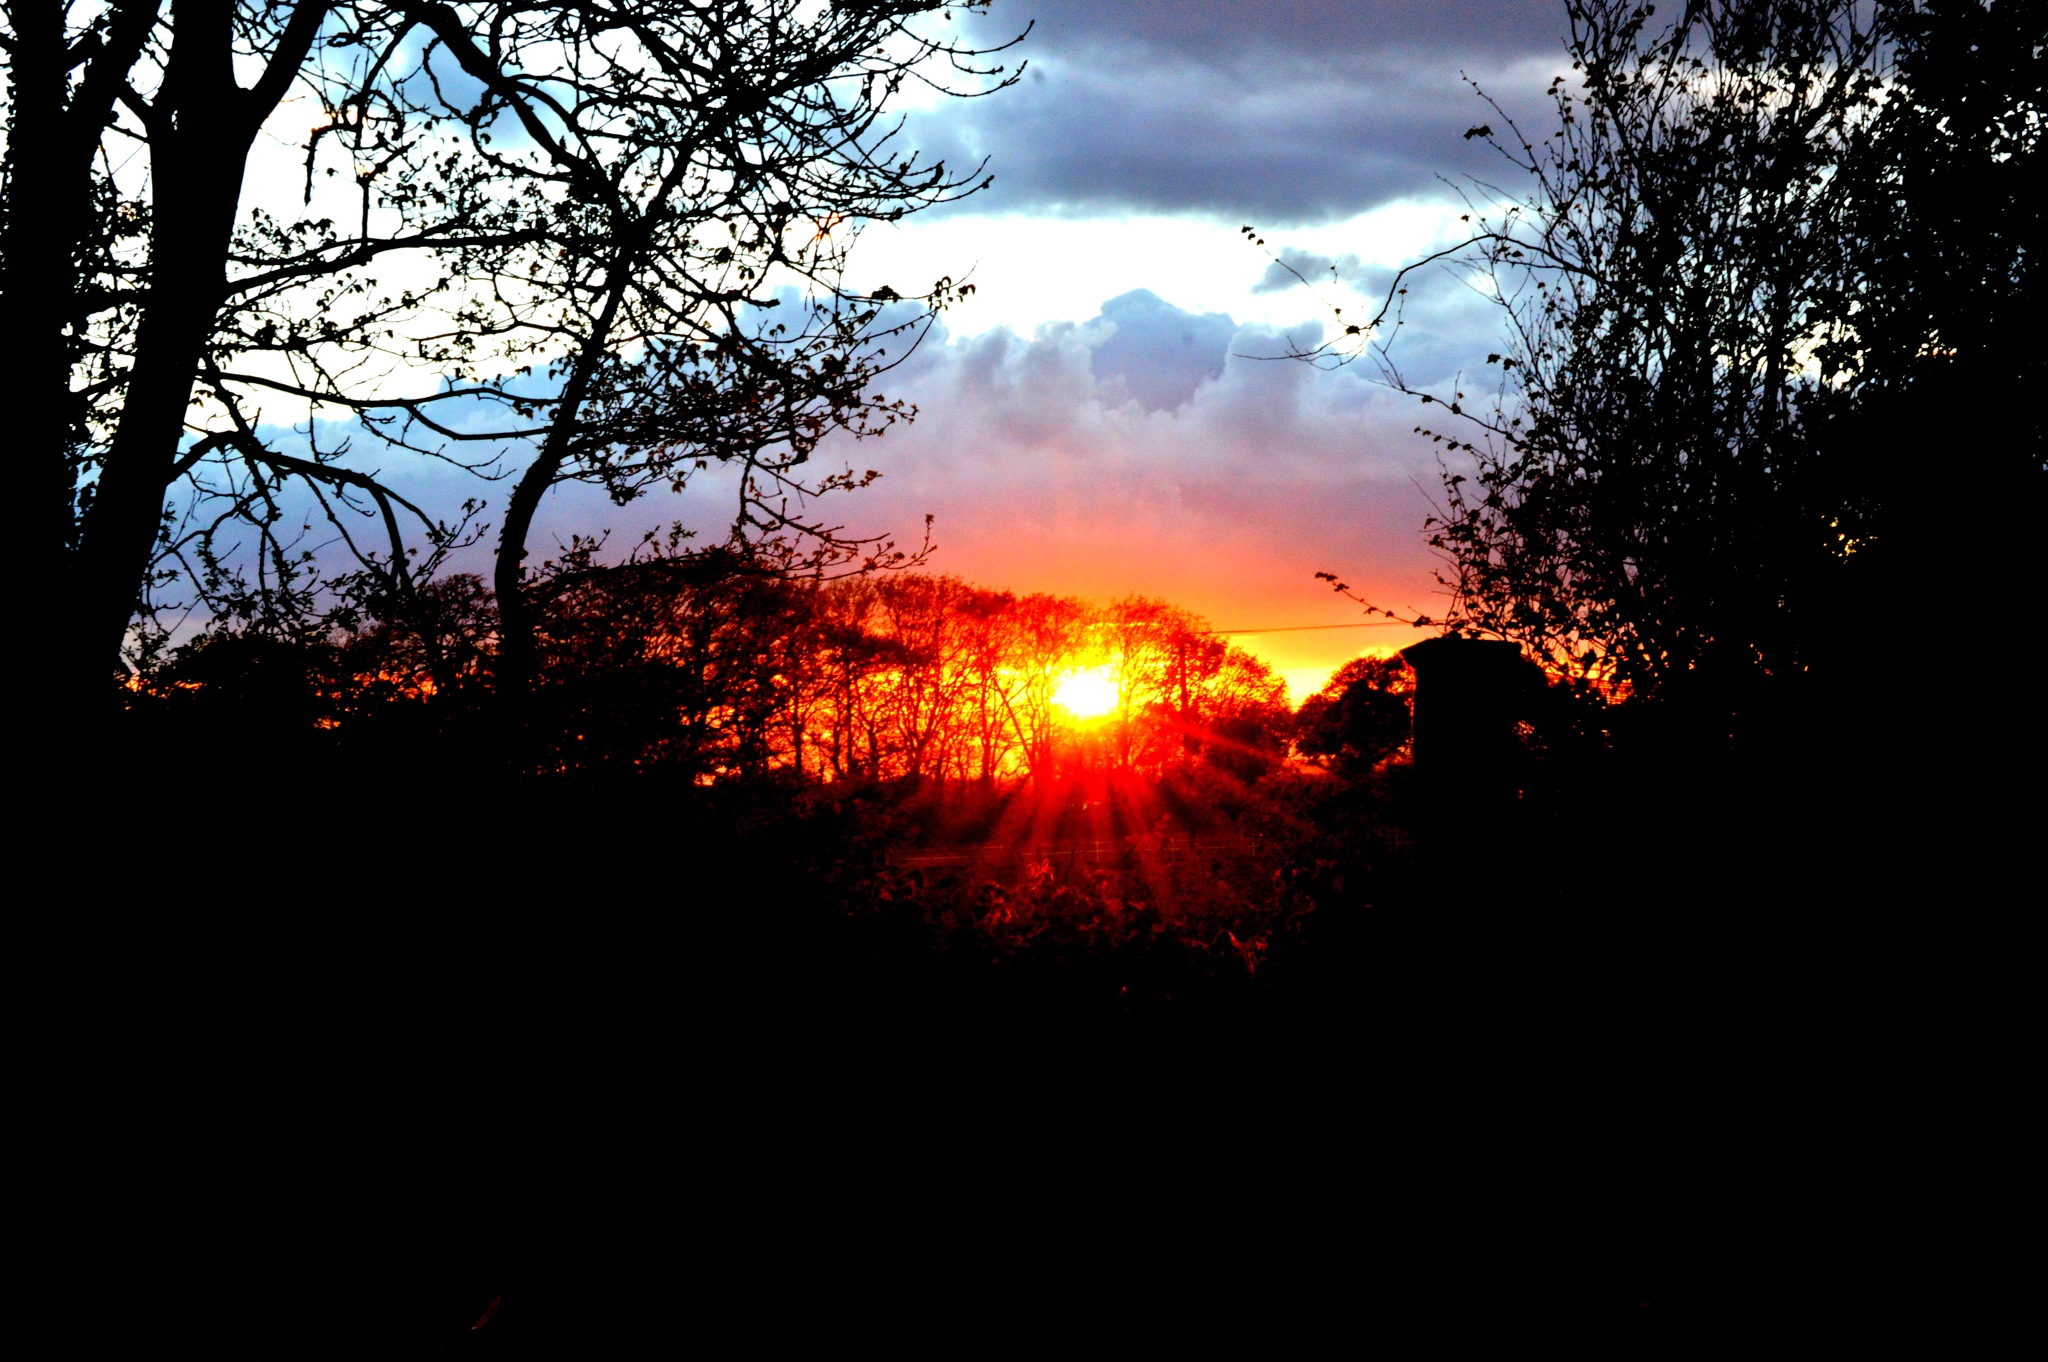 more sunset by peter fooks